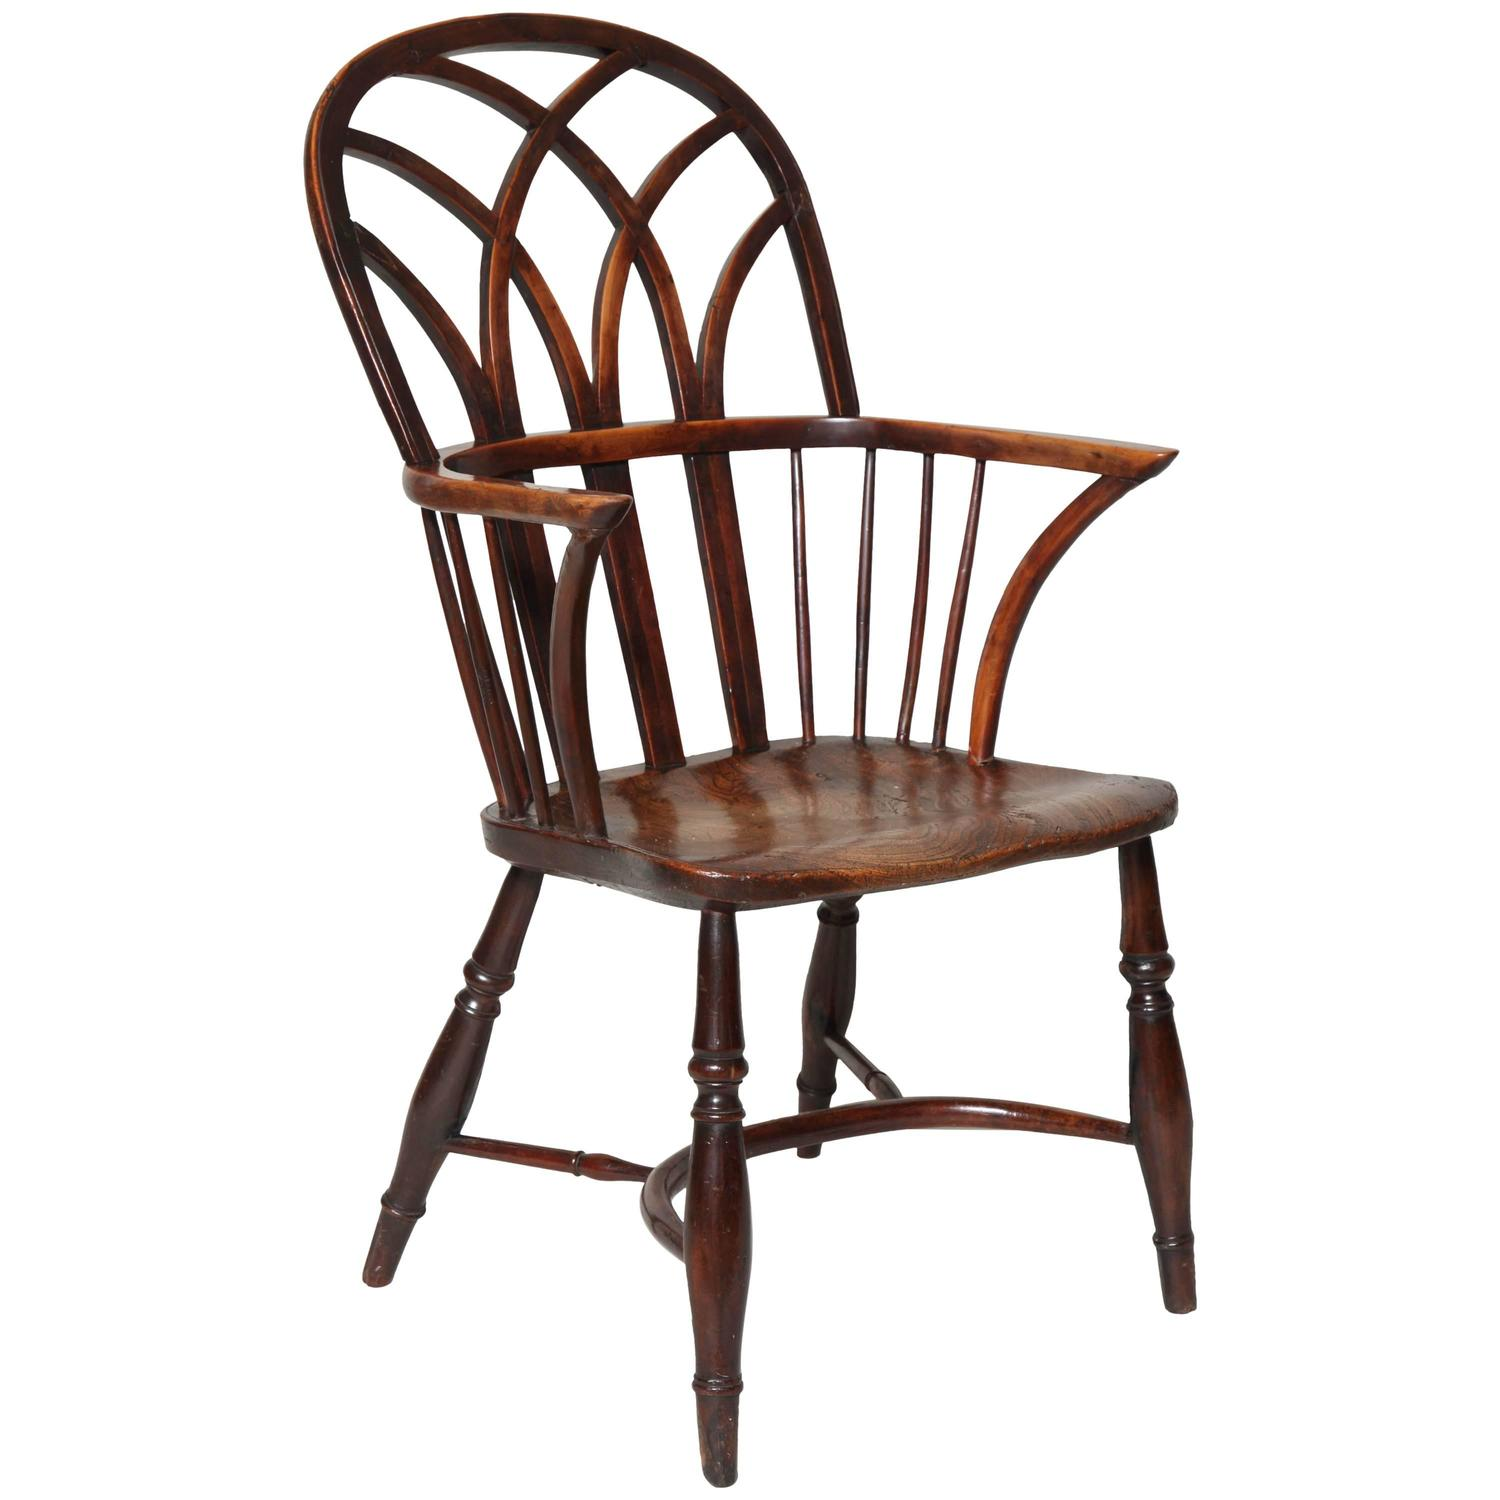 Fine Early 19th Century Yew Wood Regency Gothic Windsor Armchair